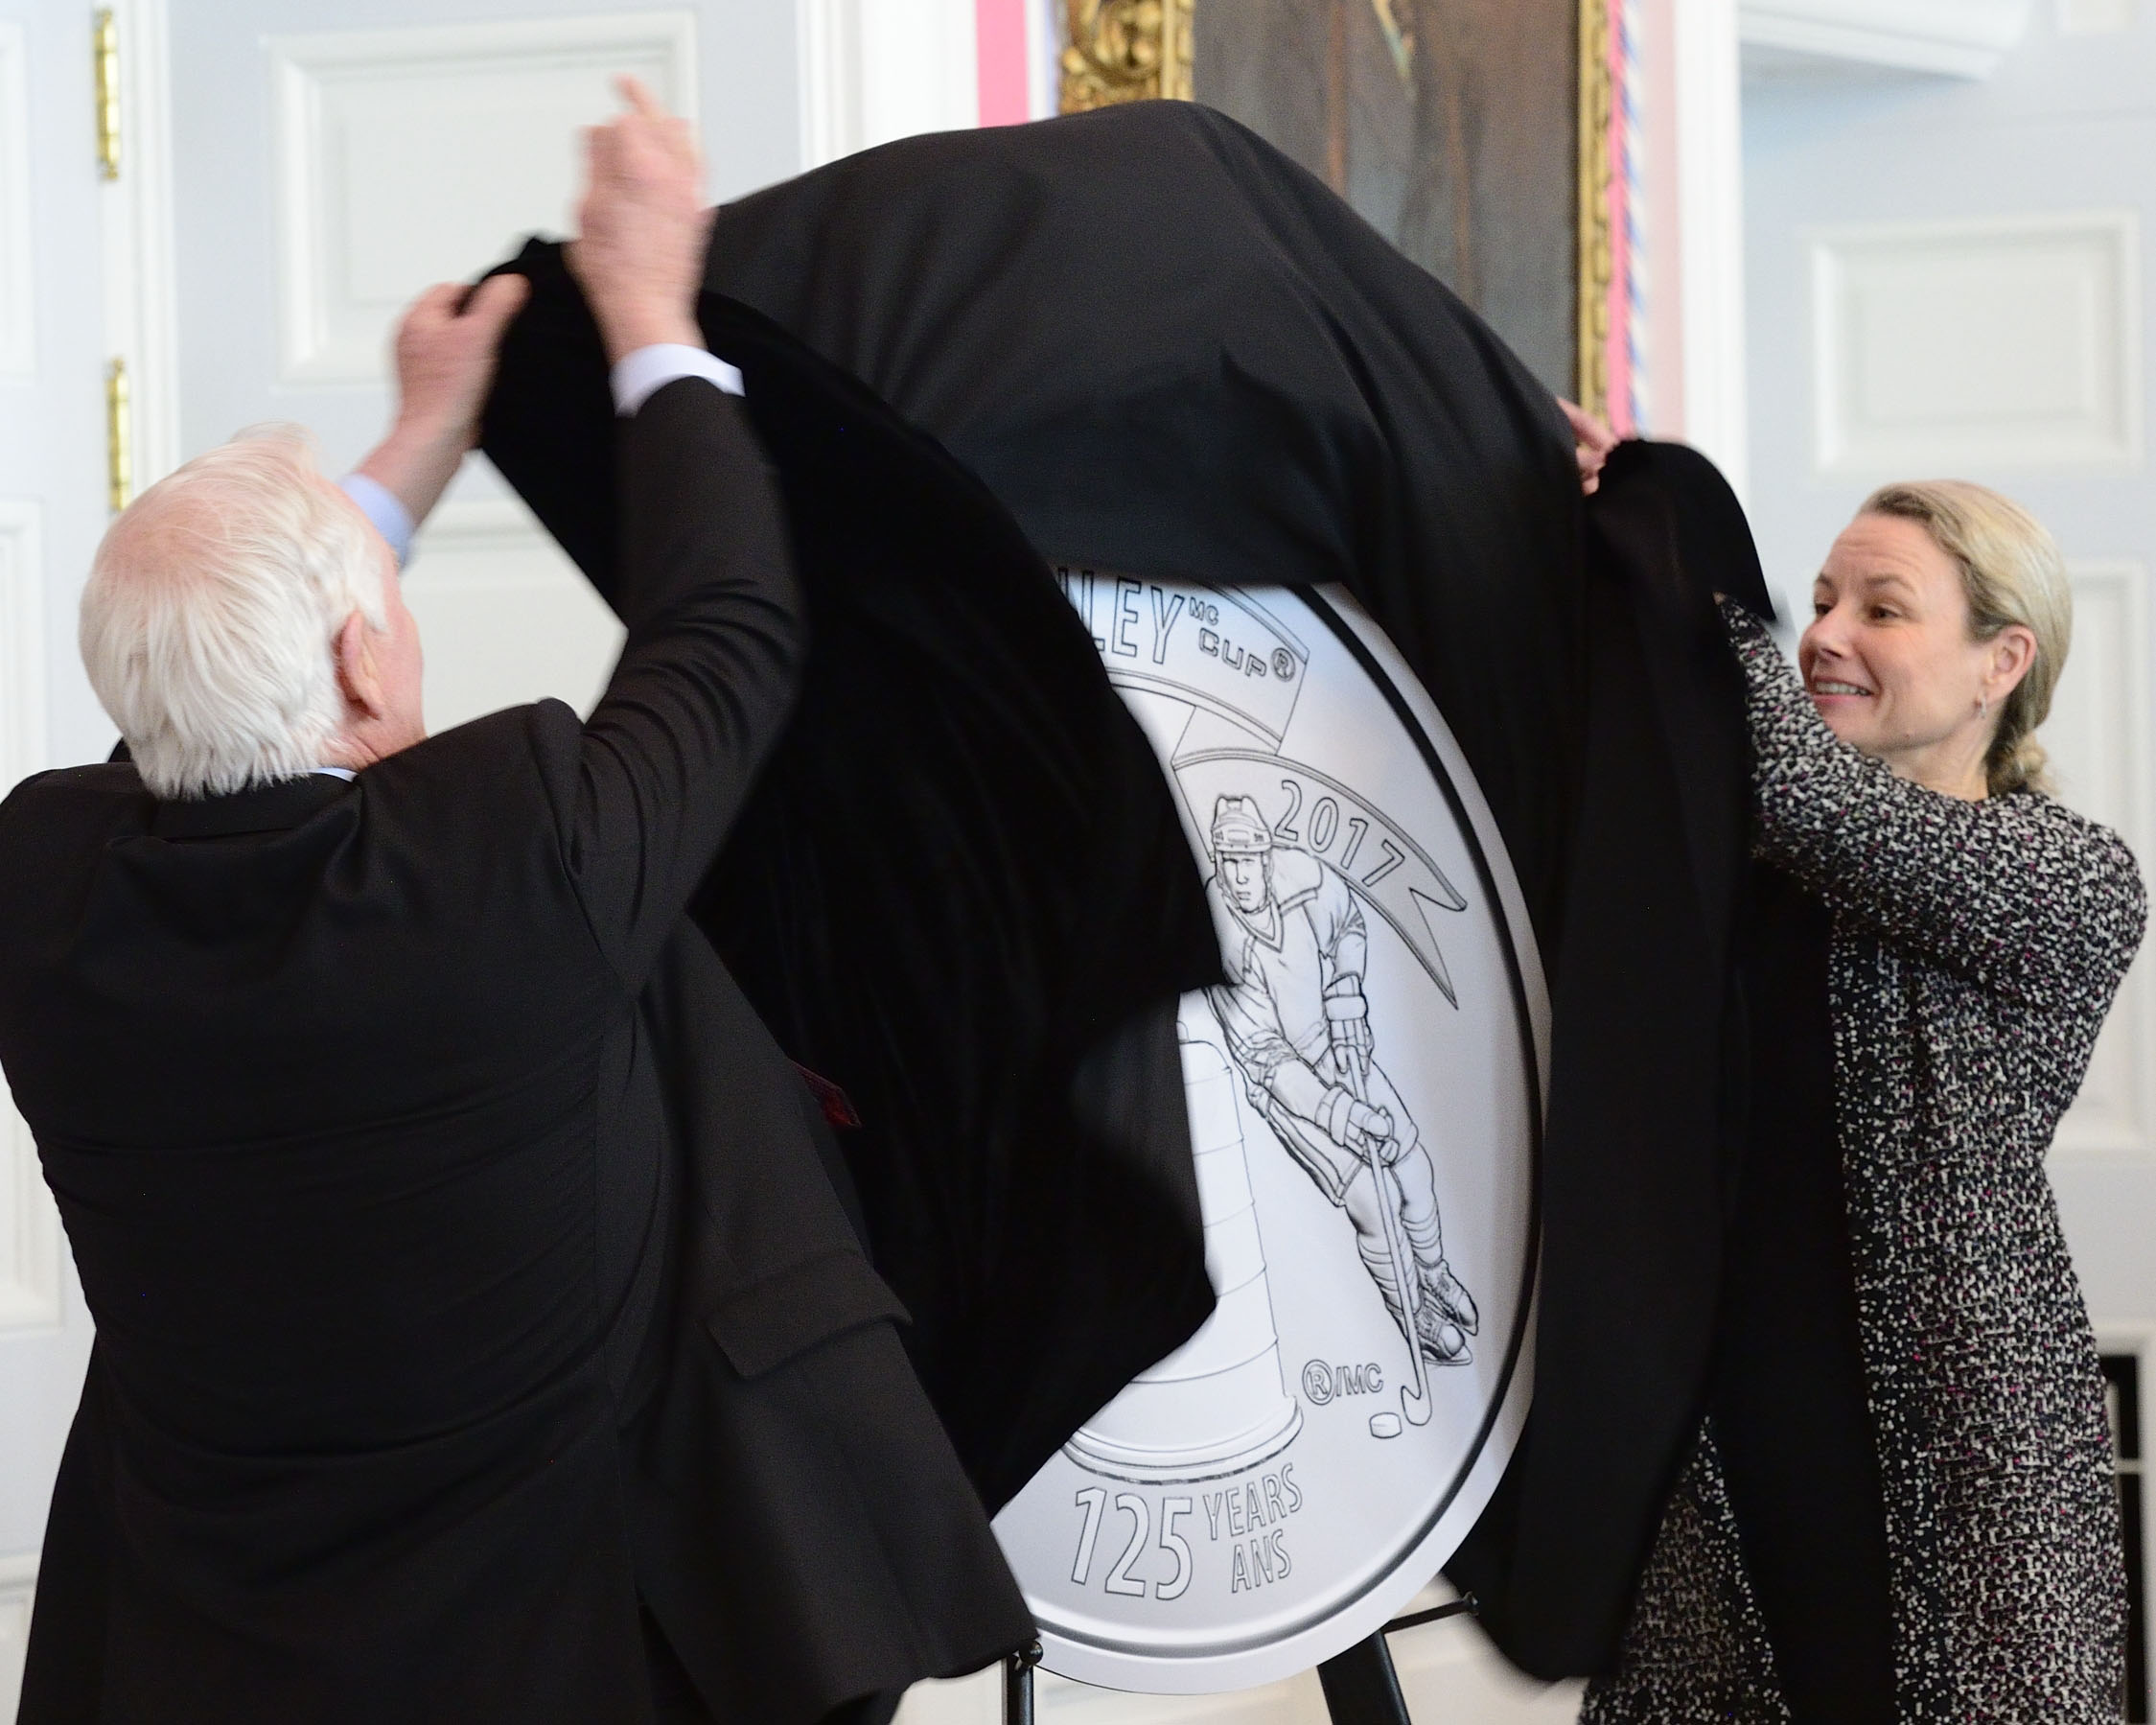 As part of the ceremony, the Governor General and Ms. Sandra Hanington, President and CEO of the Royal Canadian Mint, unveiled a new 25-cent circulation coin commemorating the Stanley Cup's 125th anniversary.